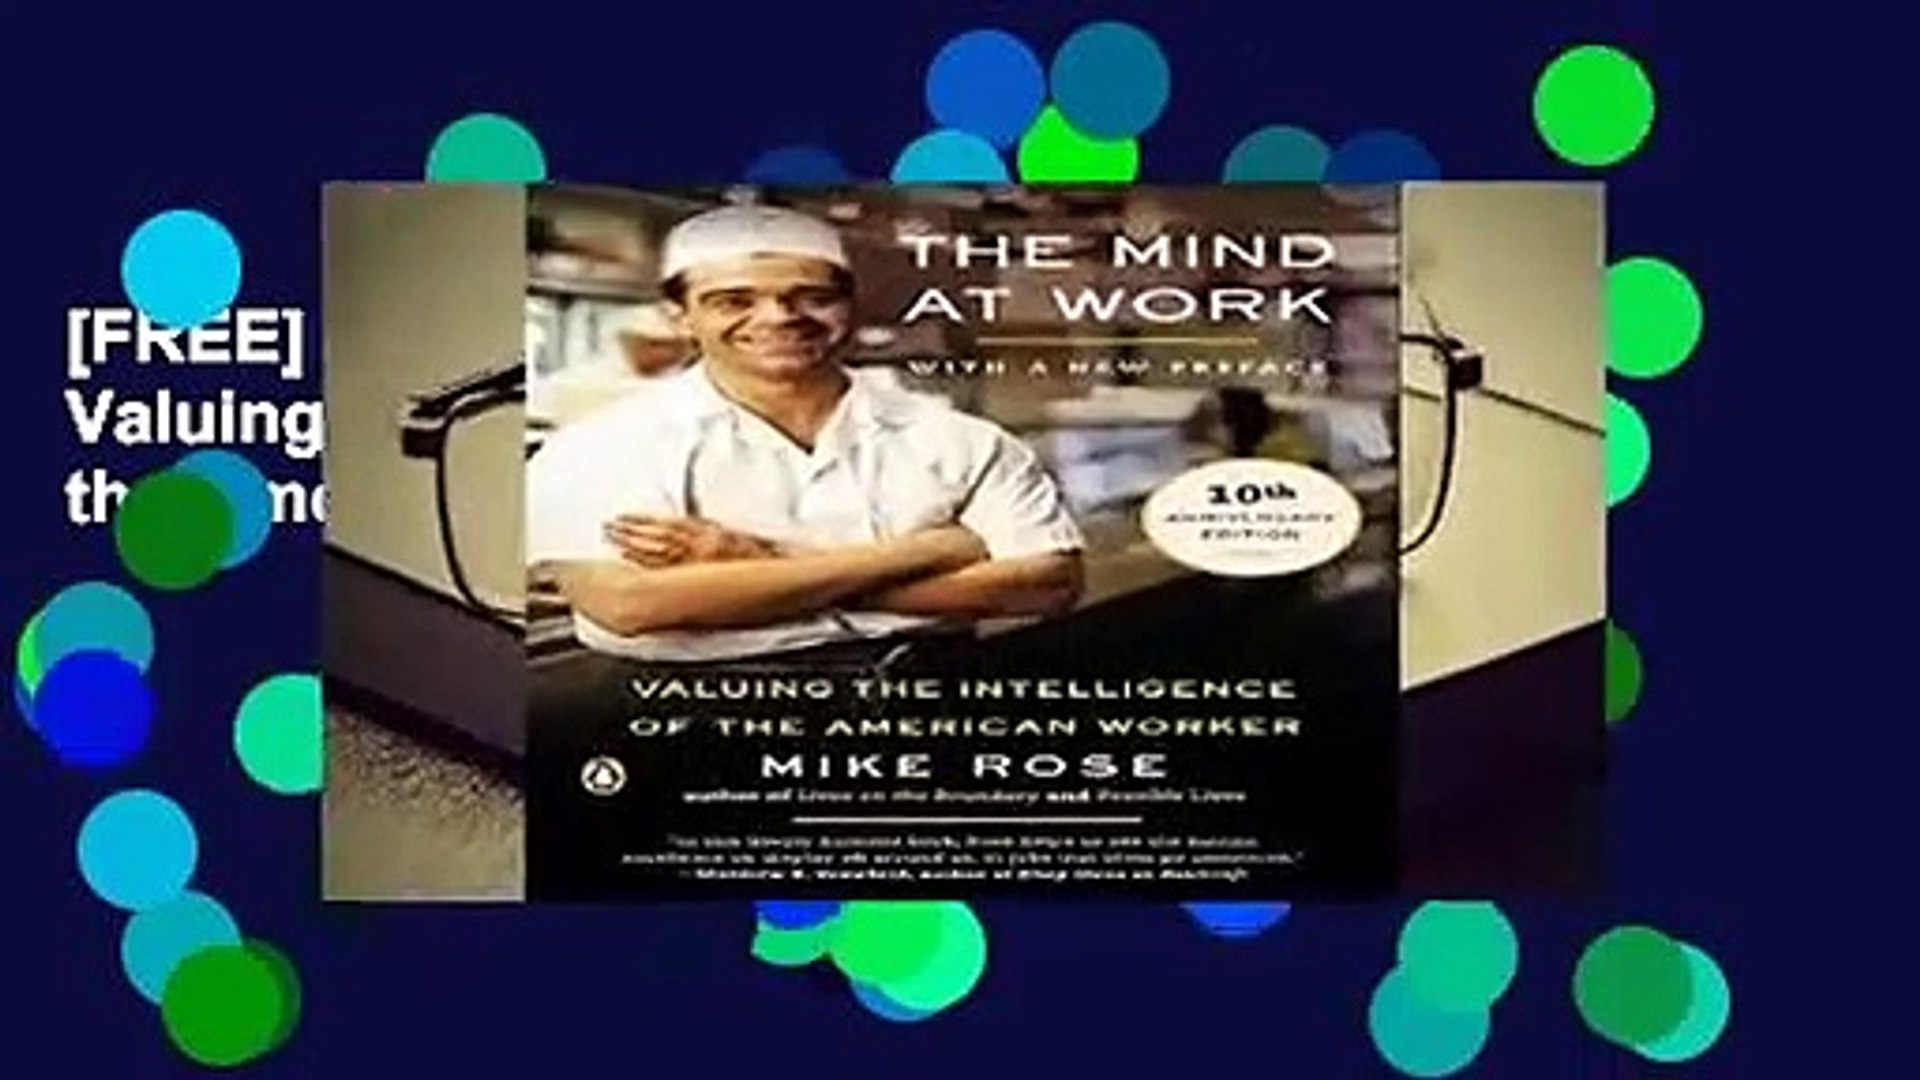 Valuing the Intelligence of the American Worker The Mind at Work